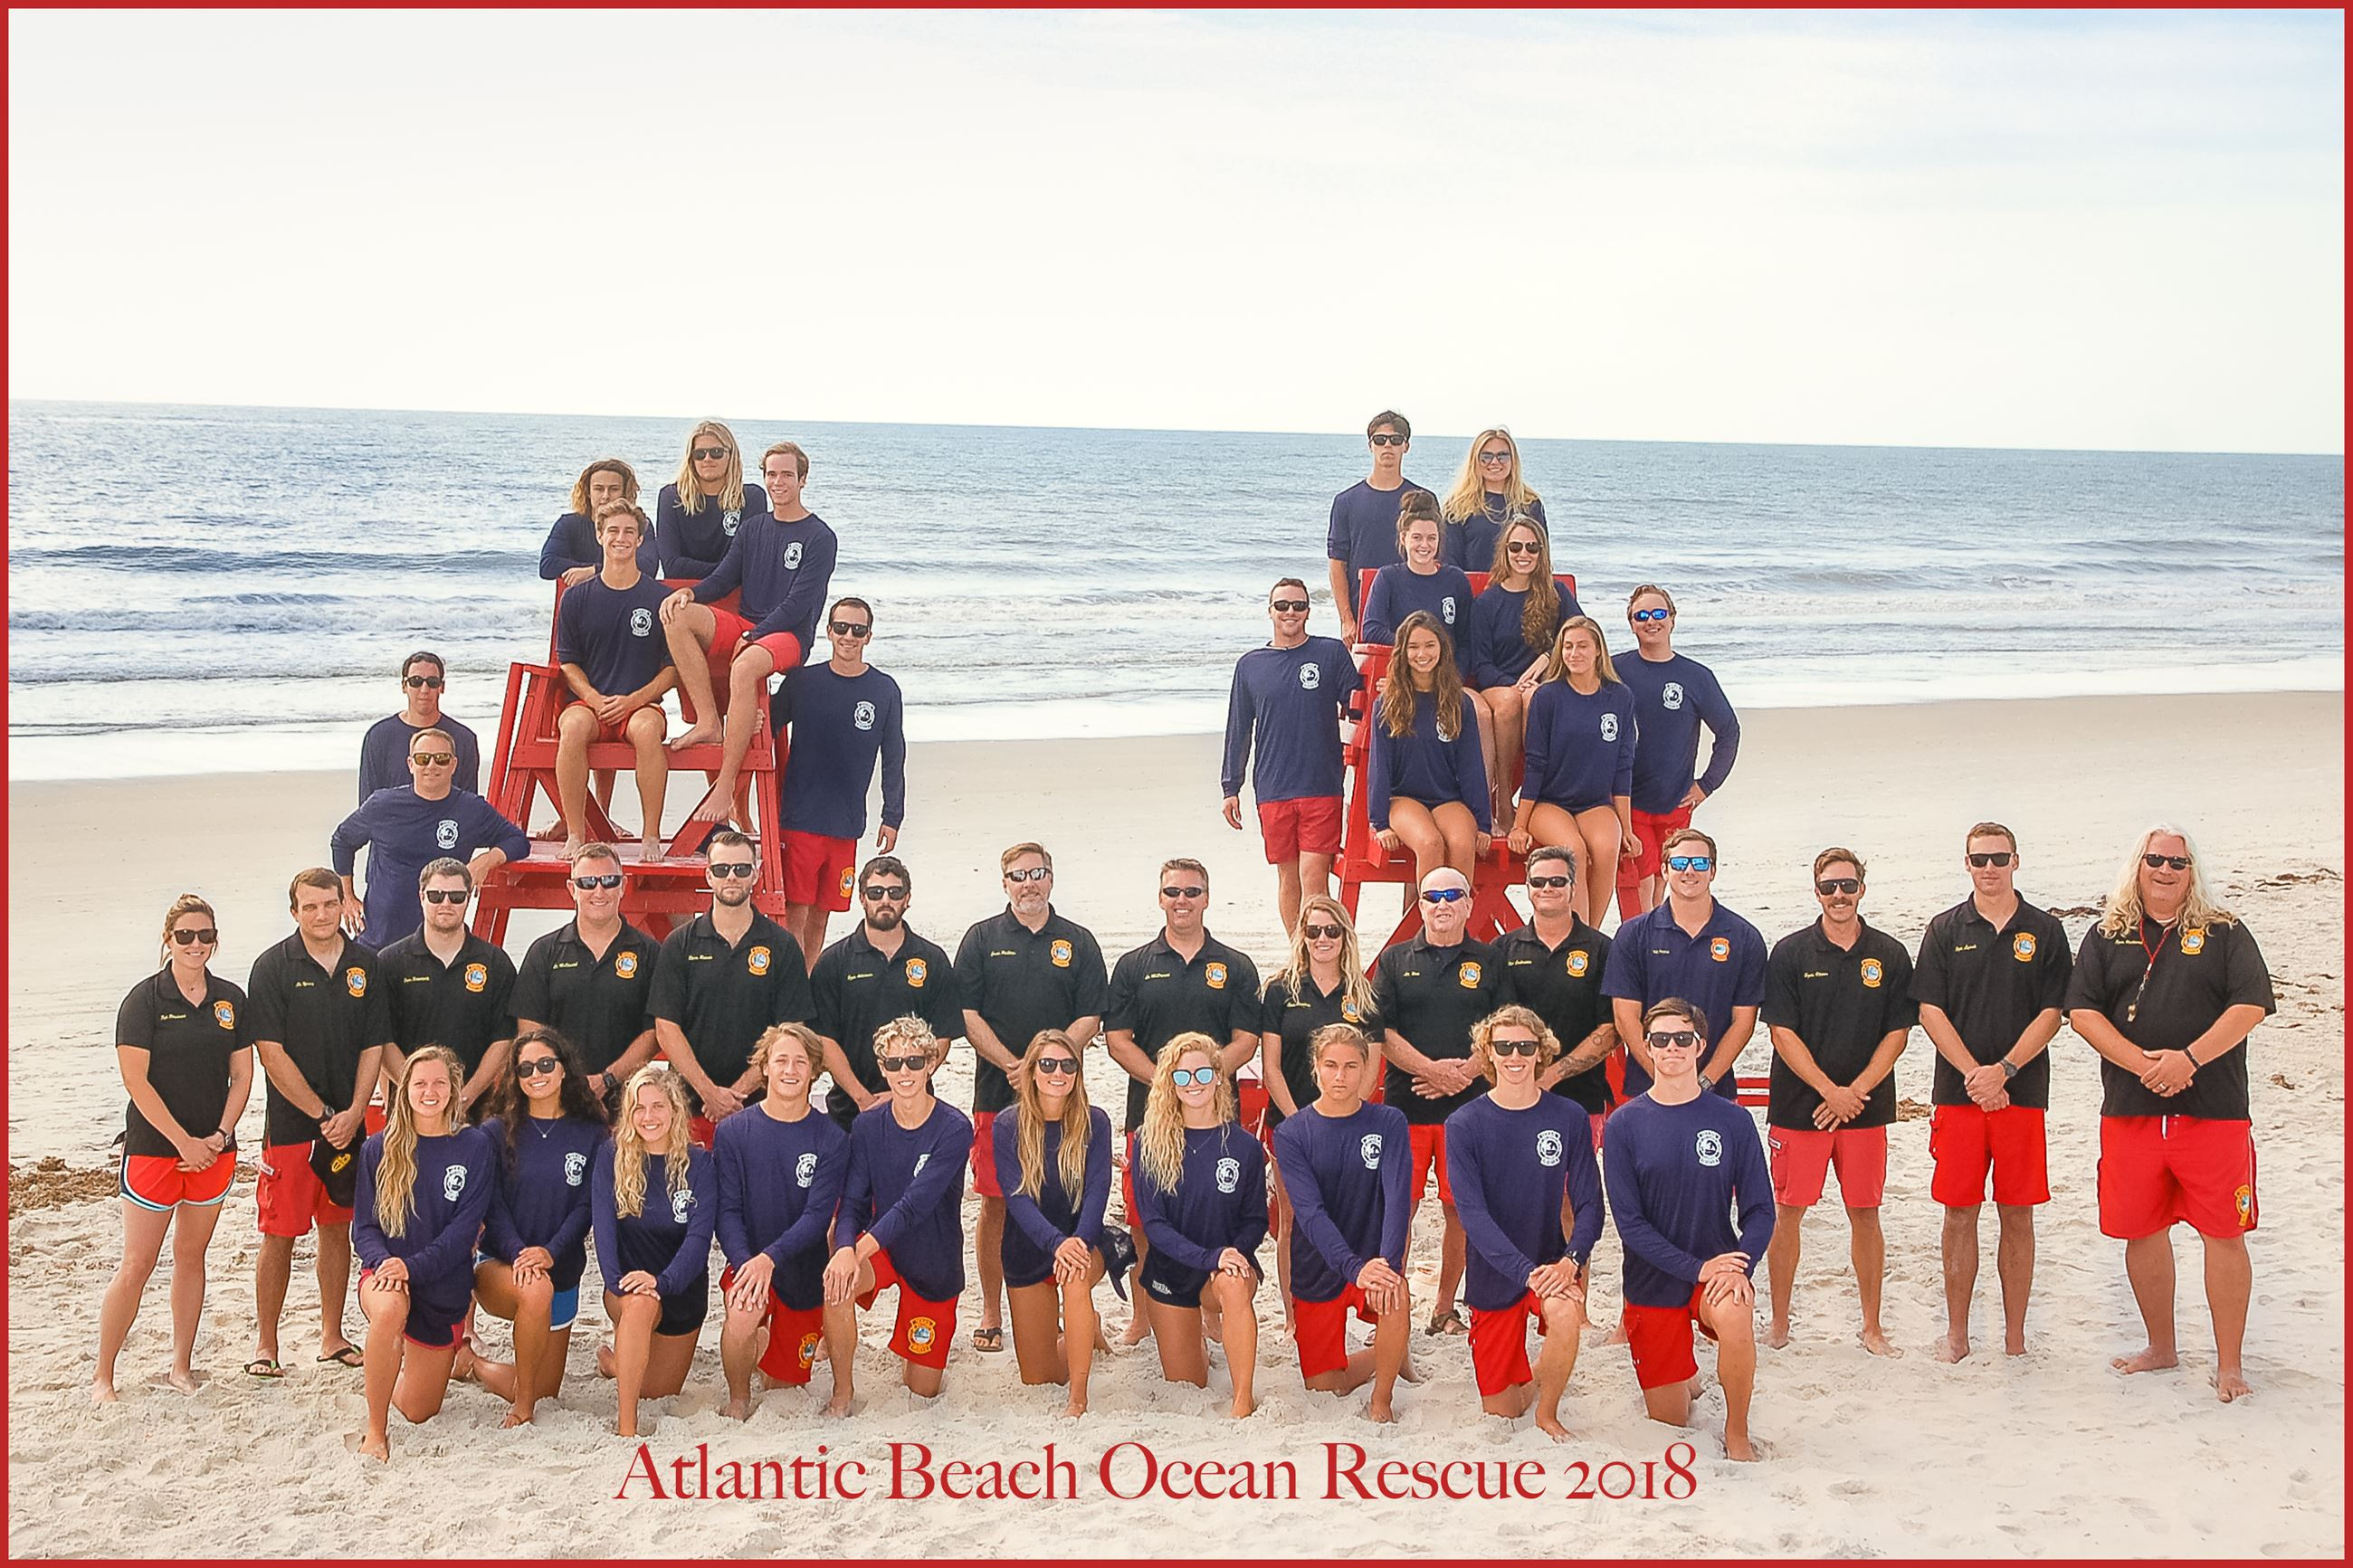 2018 Atlantic Beach Lifeguard Group photo